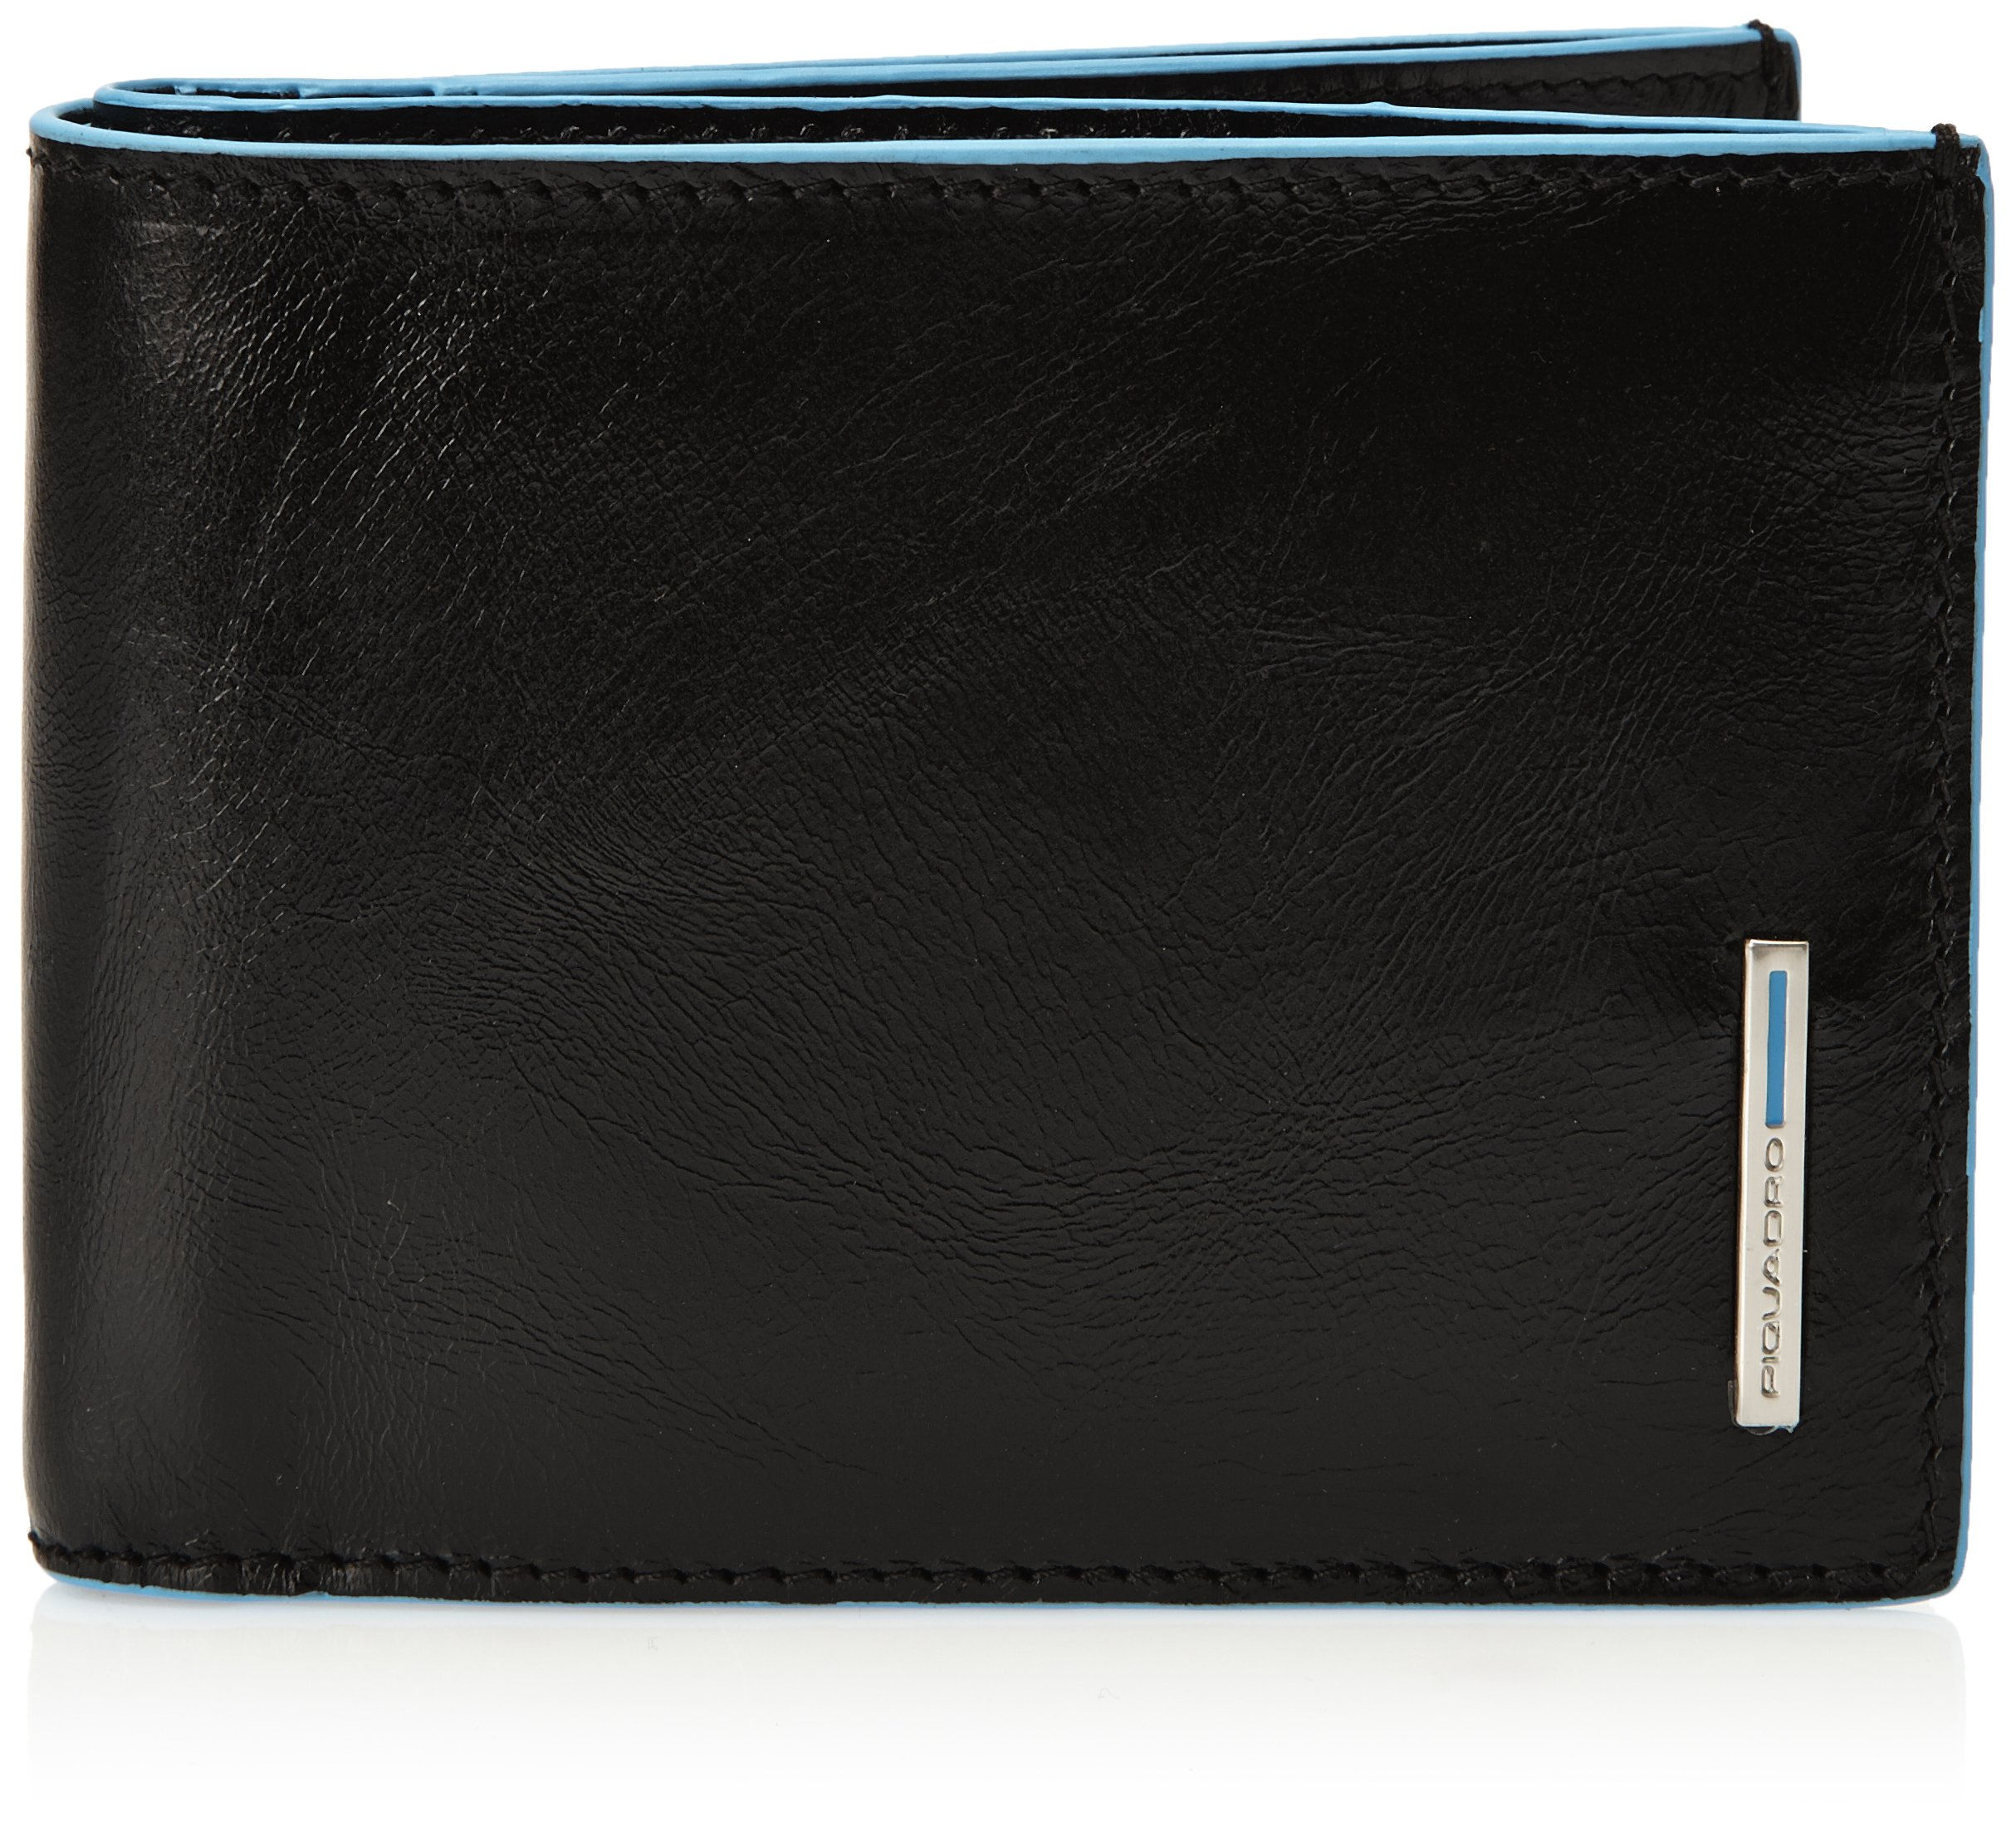 Piquadro Leather Man's Wallet with 12 Credit Card Slots, Black